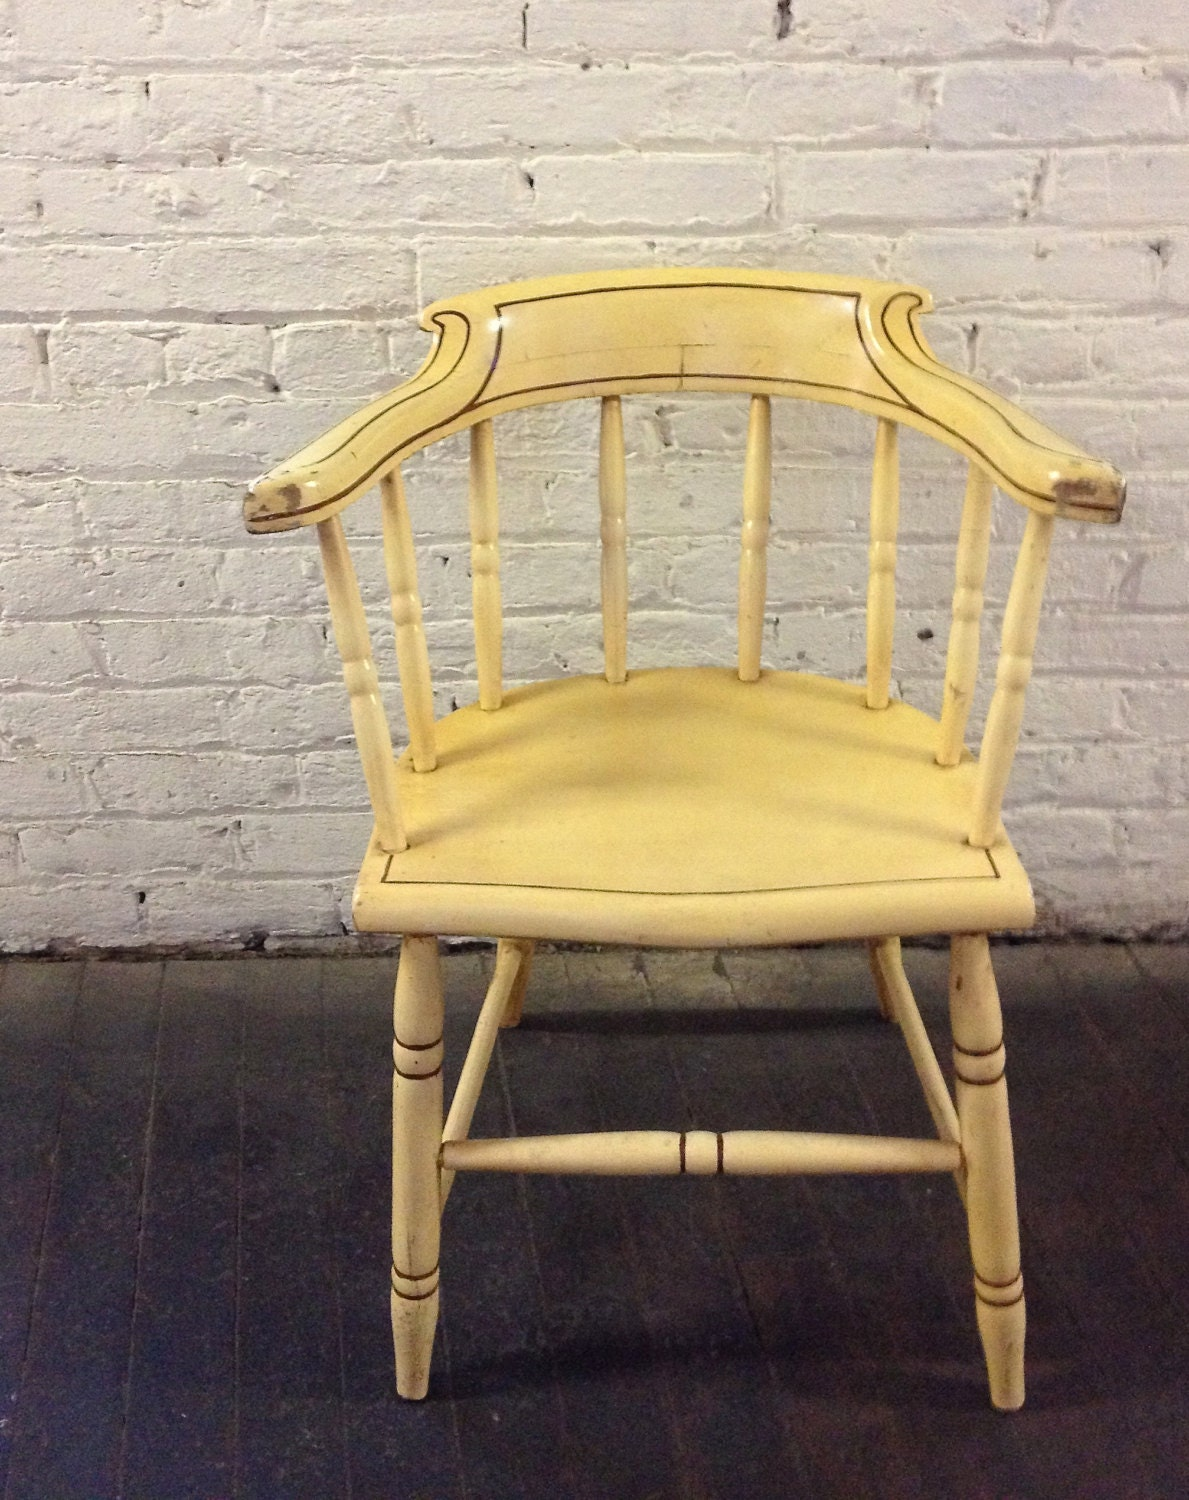 Pale Yellow Vintage Wooden Arm Chair By HalfBrother On Etsy. Full resolution‎  photograph, nominally Width 1189 Height 1500 pixels, photograph with #A28229.